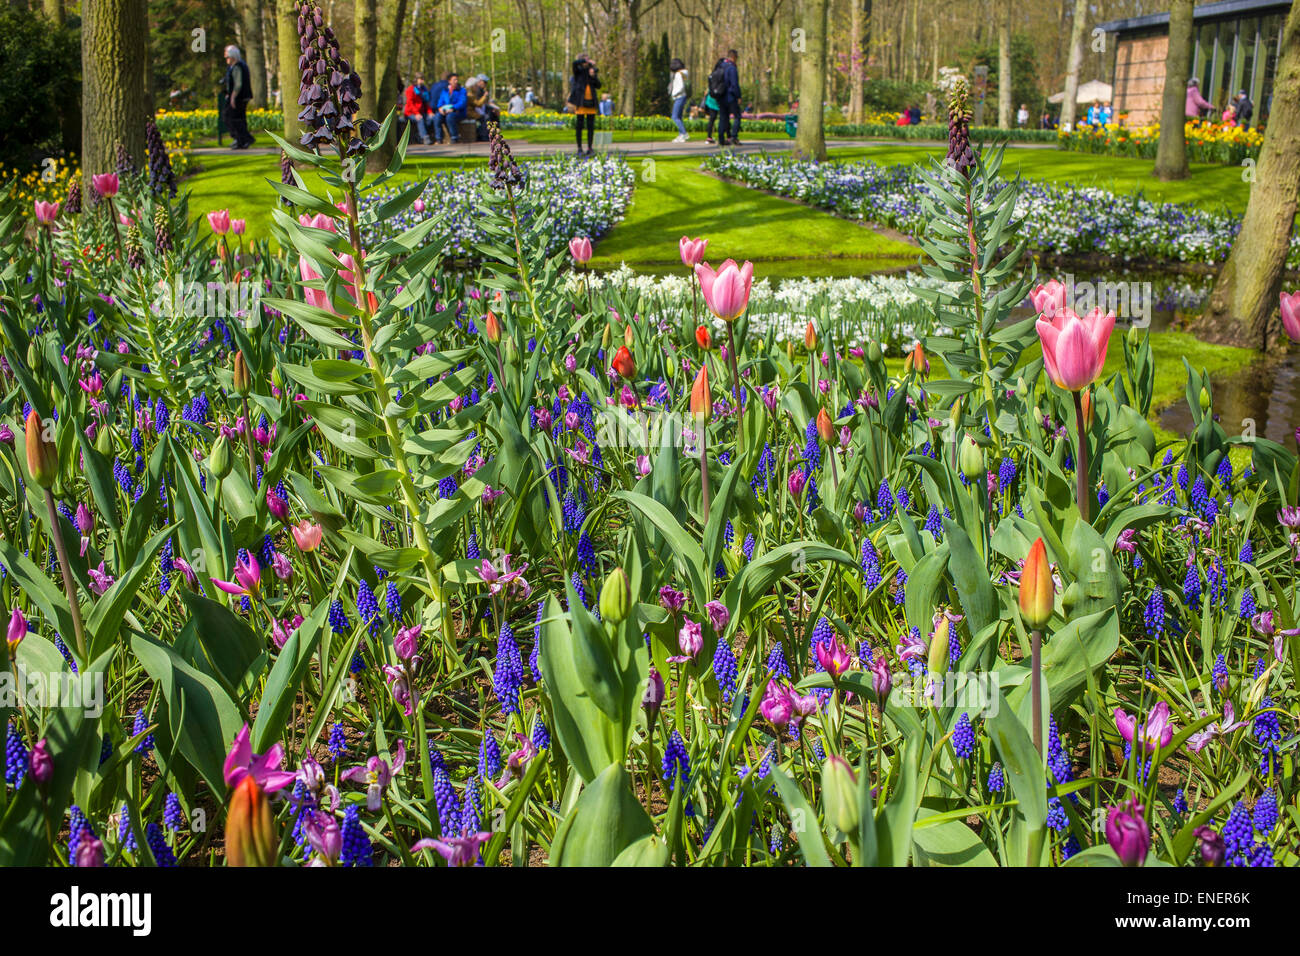 The beauty of the flowers in spring in the Keukenhof - Stock Image